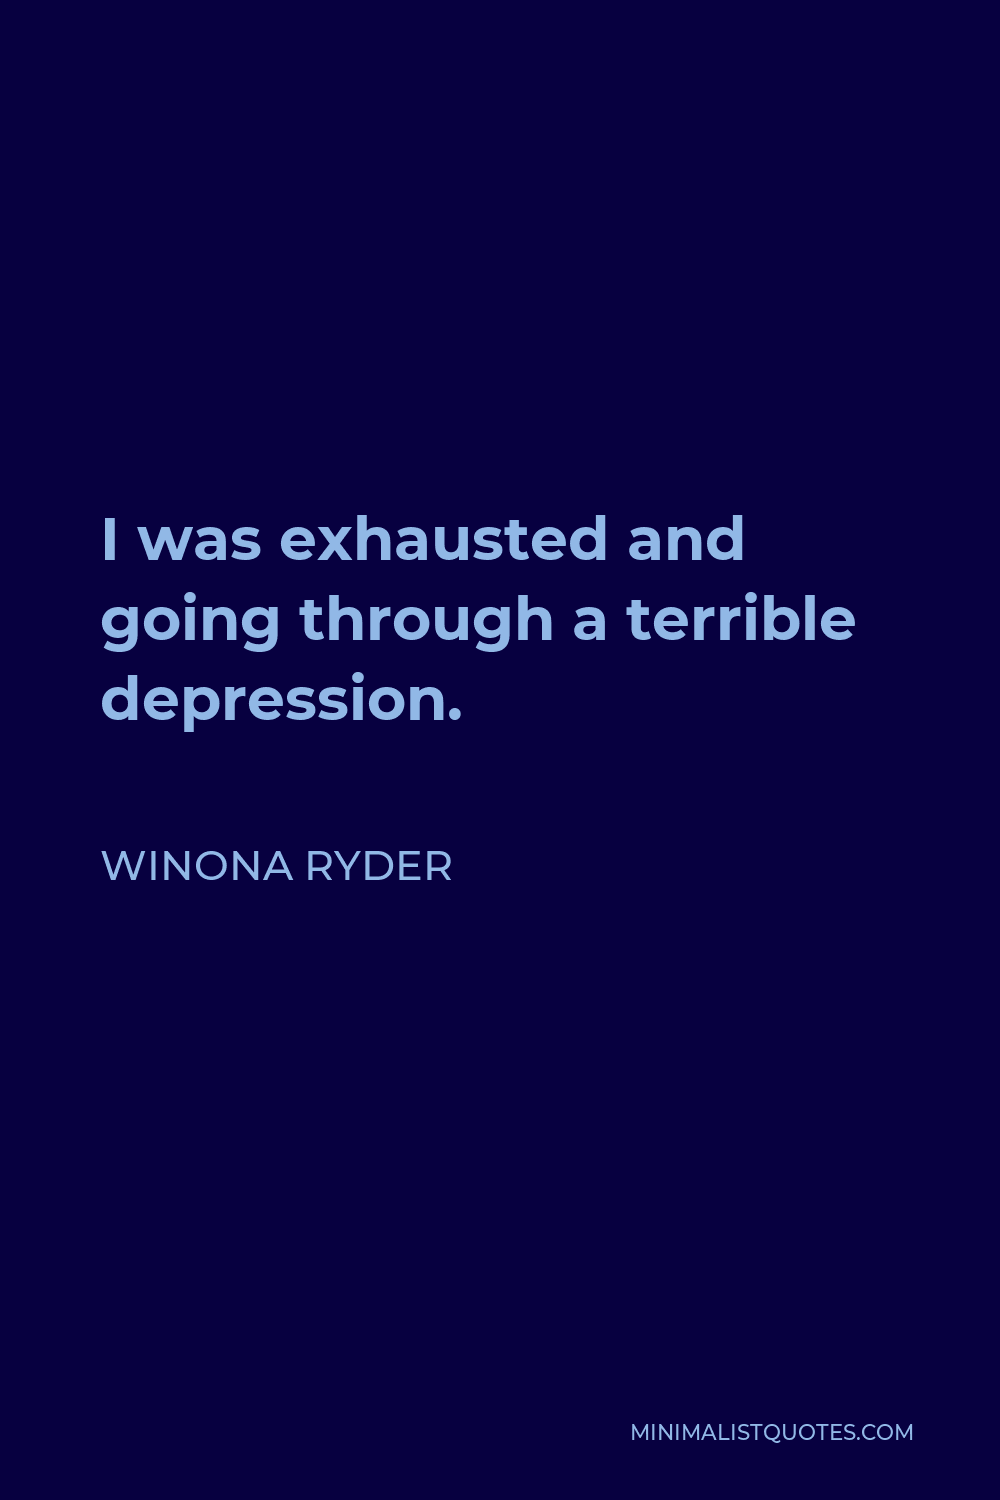 Winona Ryder Quote - I was exhausted and going through a terrible depression.